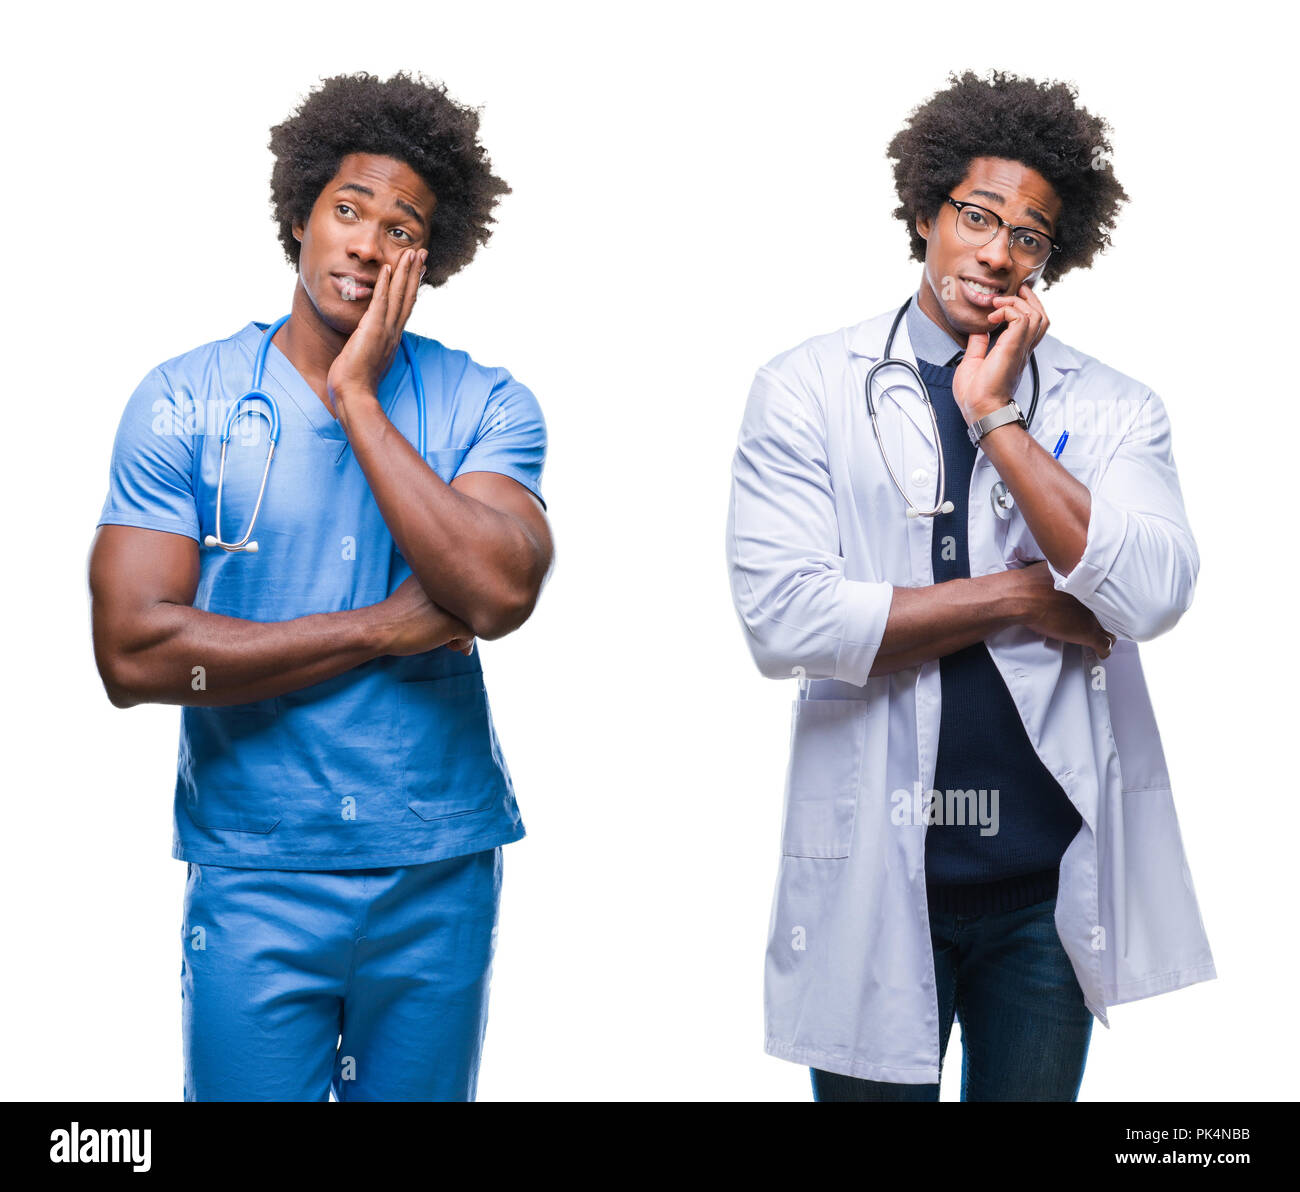 Collage of african american young surgeon, nurse, doctor man over isolated background thinking looking tired and bored with depression problems with c Stock Photo